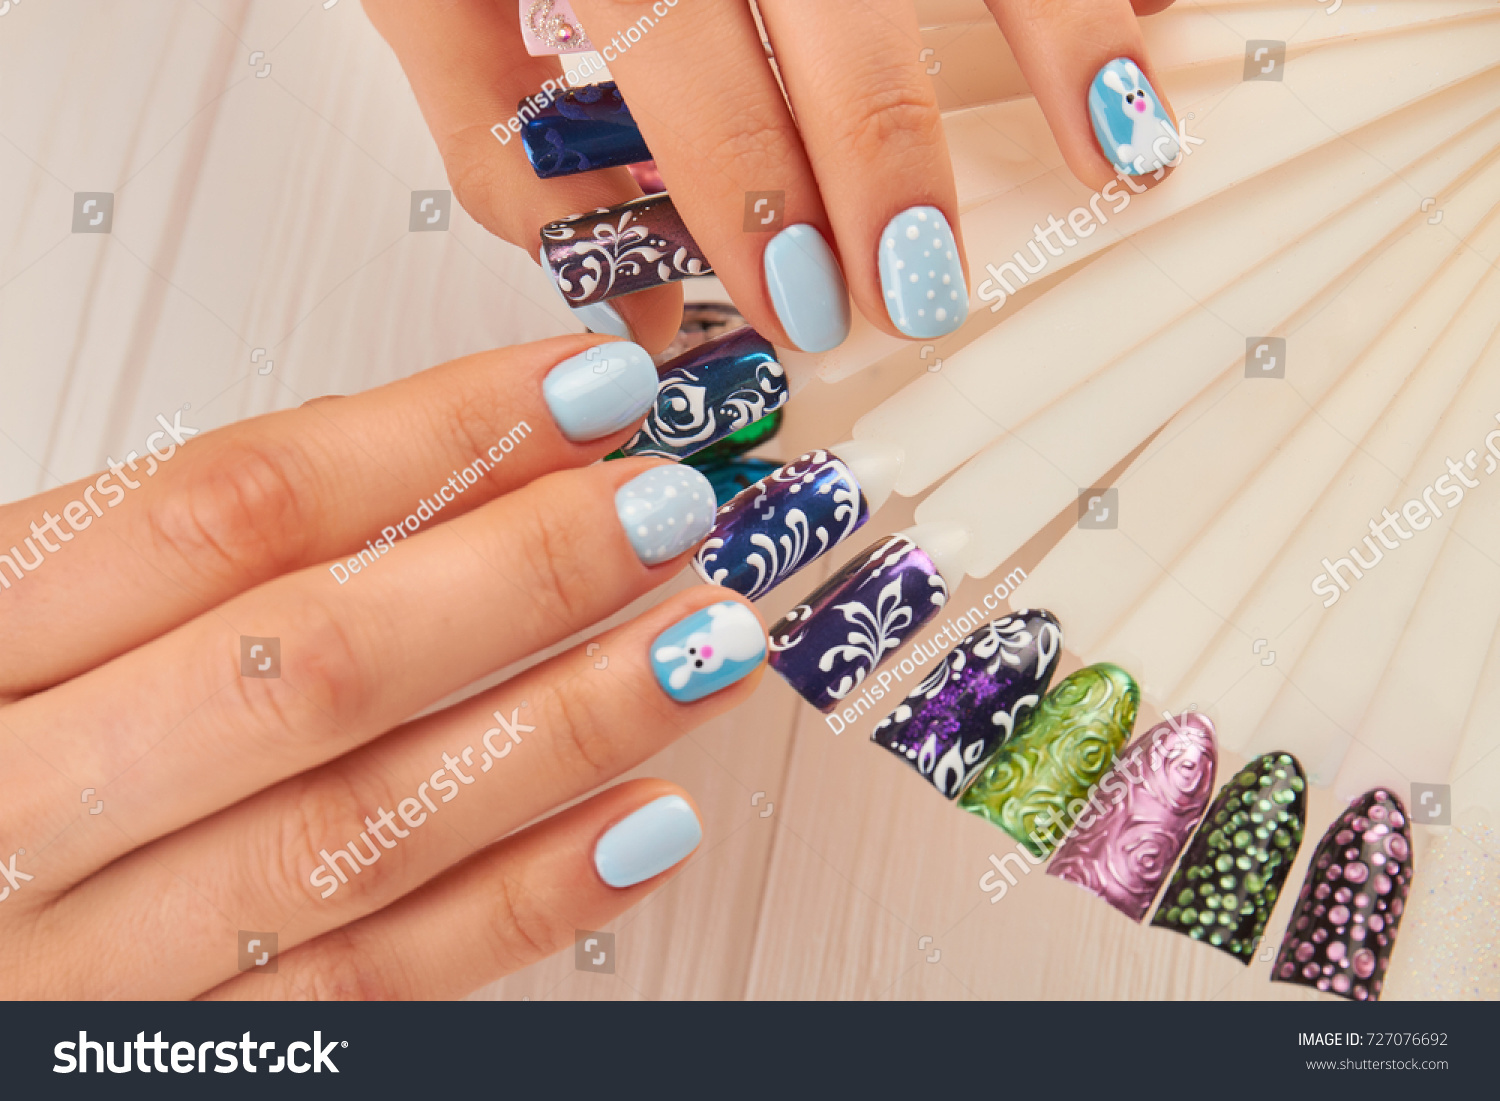 Beautiful Manicure Nail Art Samples Female Stock Photo (Royalty Free ...